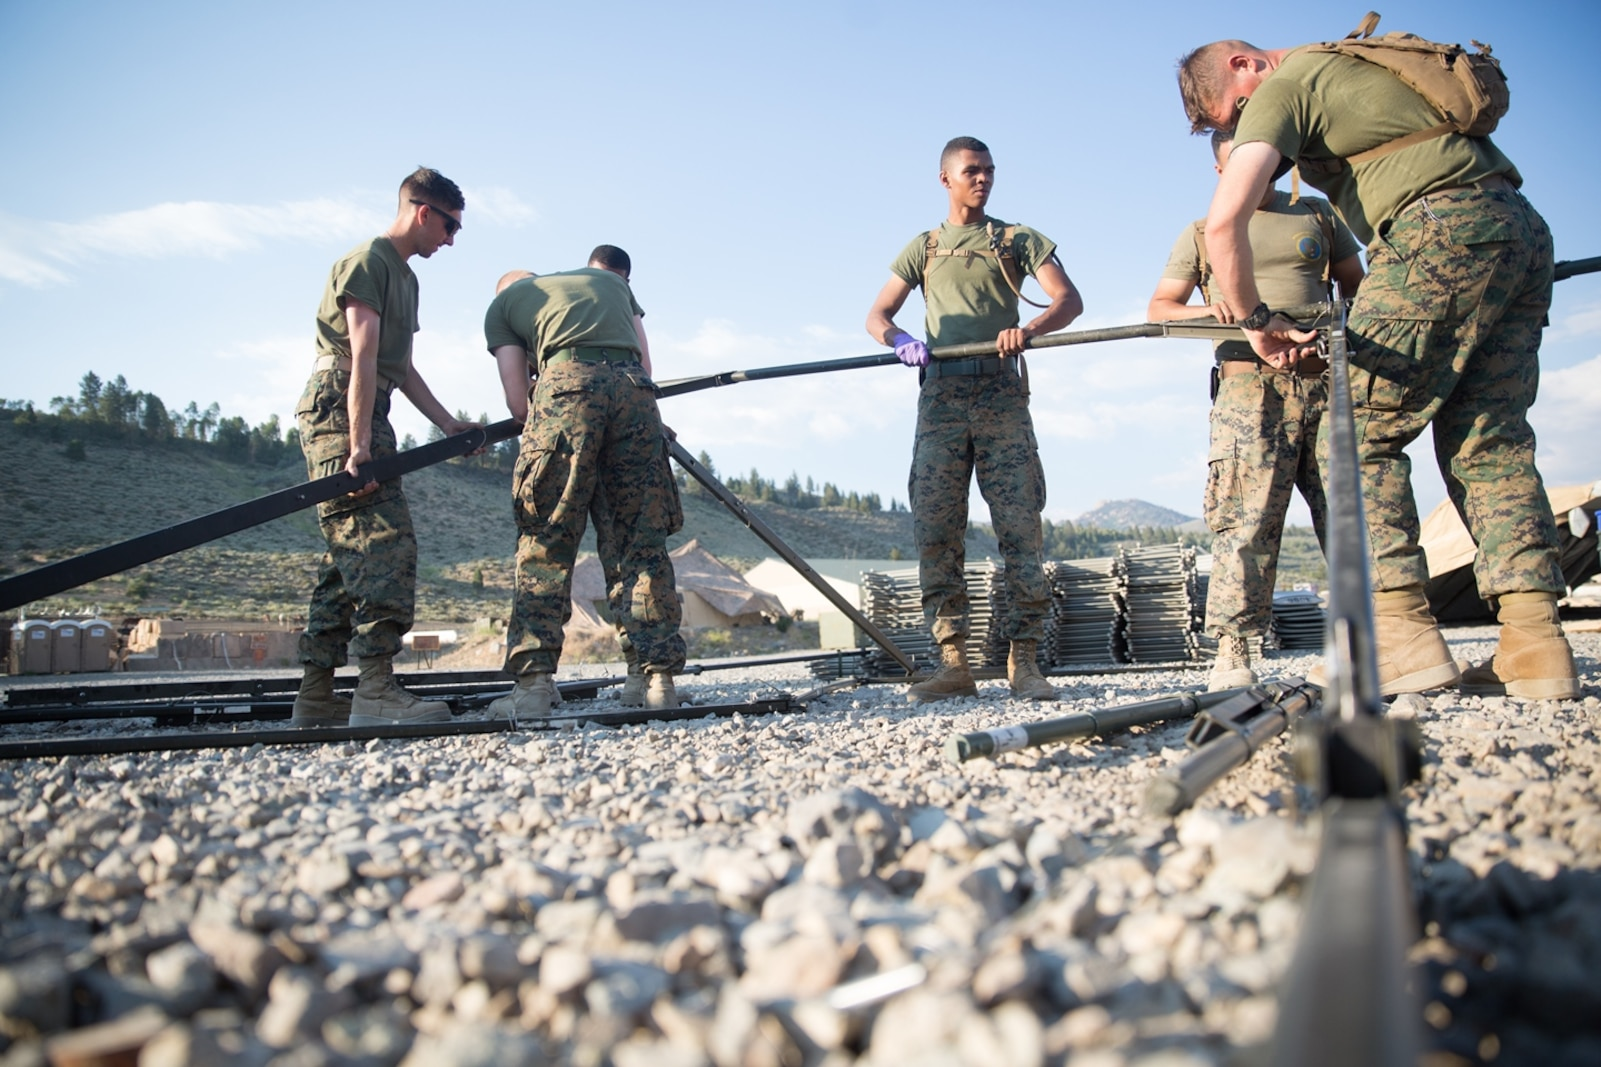 U.S. Marines with Combat Logistics Battalion 5 (CLB-5), Combat Logistics Regiment 1, 1st Marine Logistics Group, help form the foundation of an expeditionary mess hall tent on the Marine Corps Mountain Warfare Training Center Bridgeport, Calif., June 14, 2017. CLB-5 supports the 2d Battalion, 8th Marine Regiment, 2d Marine Division, logistically by tackling the technical aspects of mountainous and cold weather operations by providing them chow, water, and fuel. (U.S. Marine Corps photo by Lance Cpl. Timothy Shoemaker)